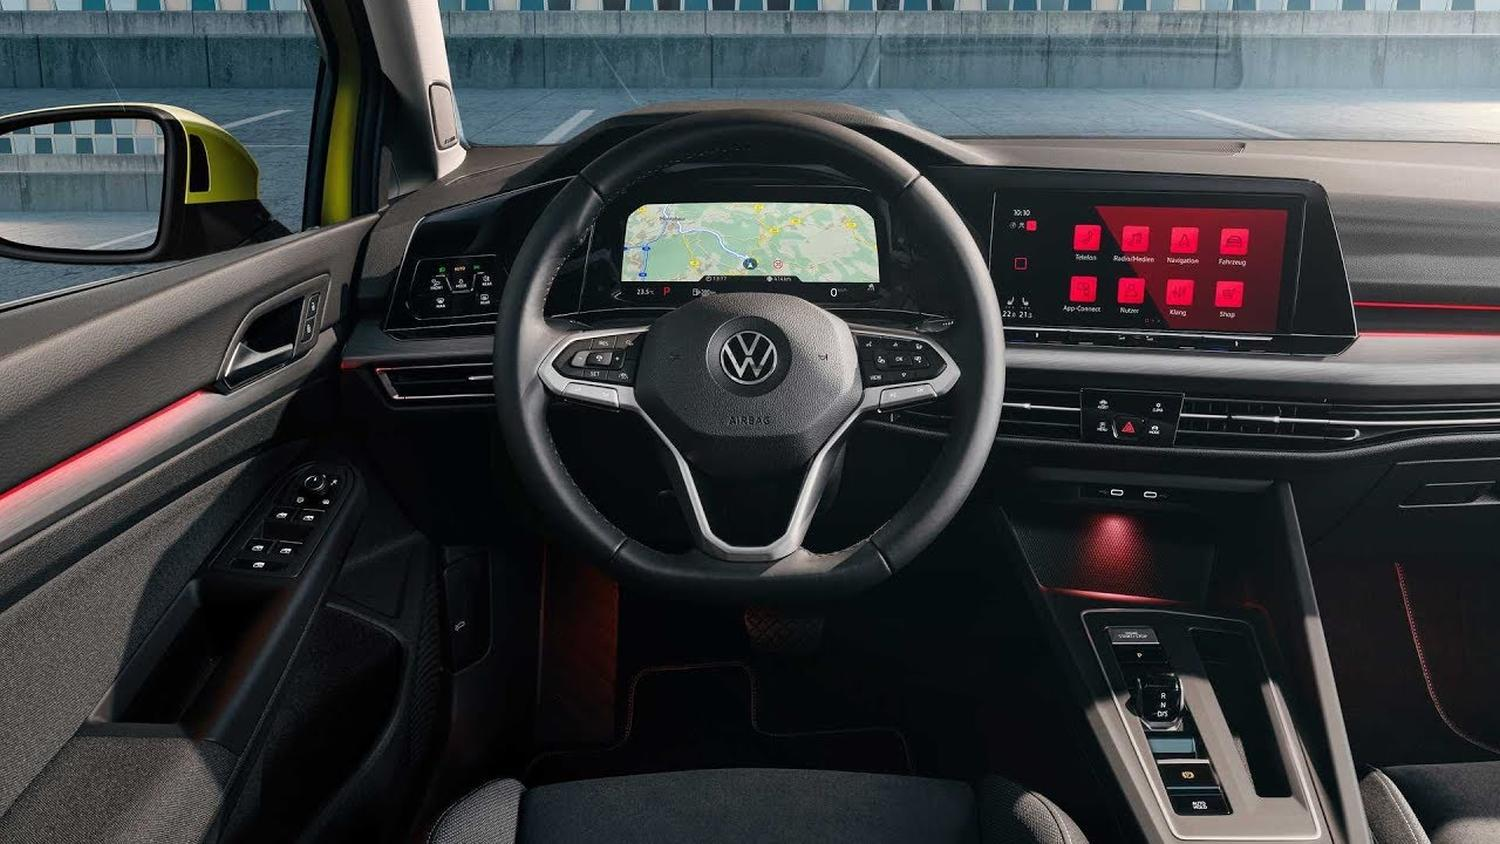 vw golf 8 assistant